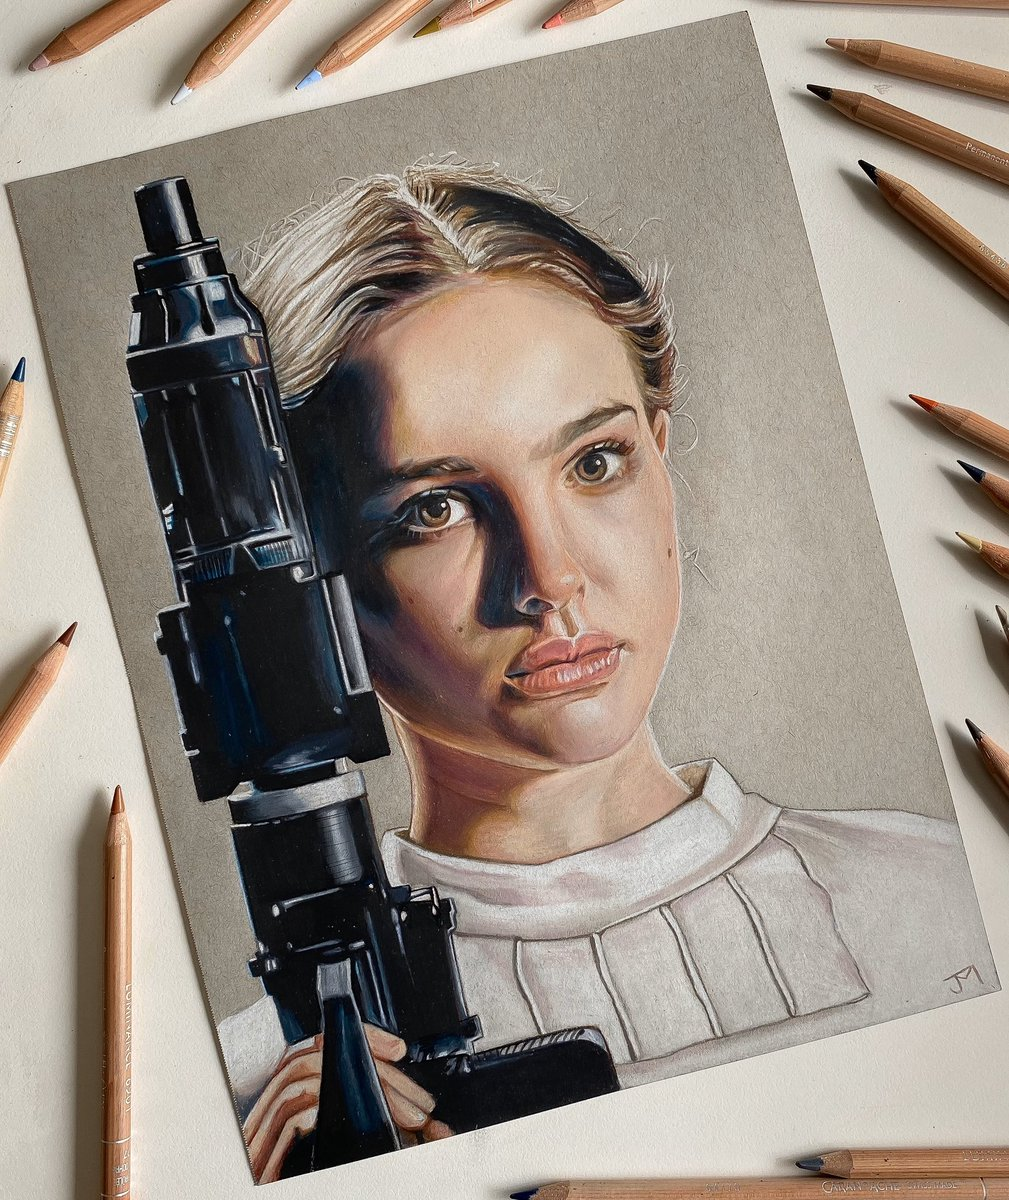 Another commissioned drawing of @natalieportman as #padmeamidala from @starwars #attackoftheclones  commission for @wheeldude_888  . . . #starwarsart #starwarsfan #StarWarsCelebration #starwarseverything #starwarsday #queenamidala #natalieportman #starwarsfanartpic.twitter.com/McnEcGCOHC